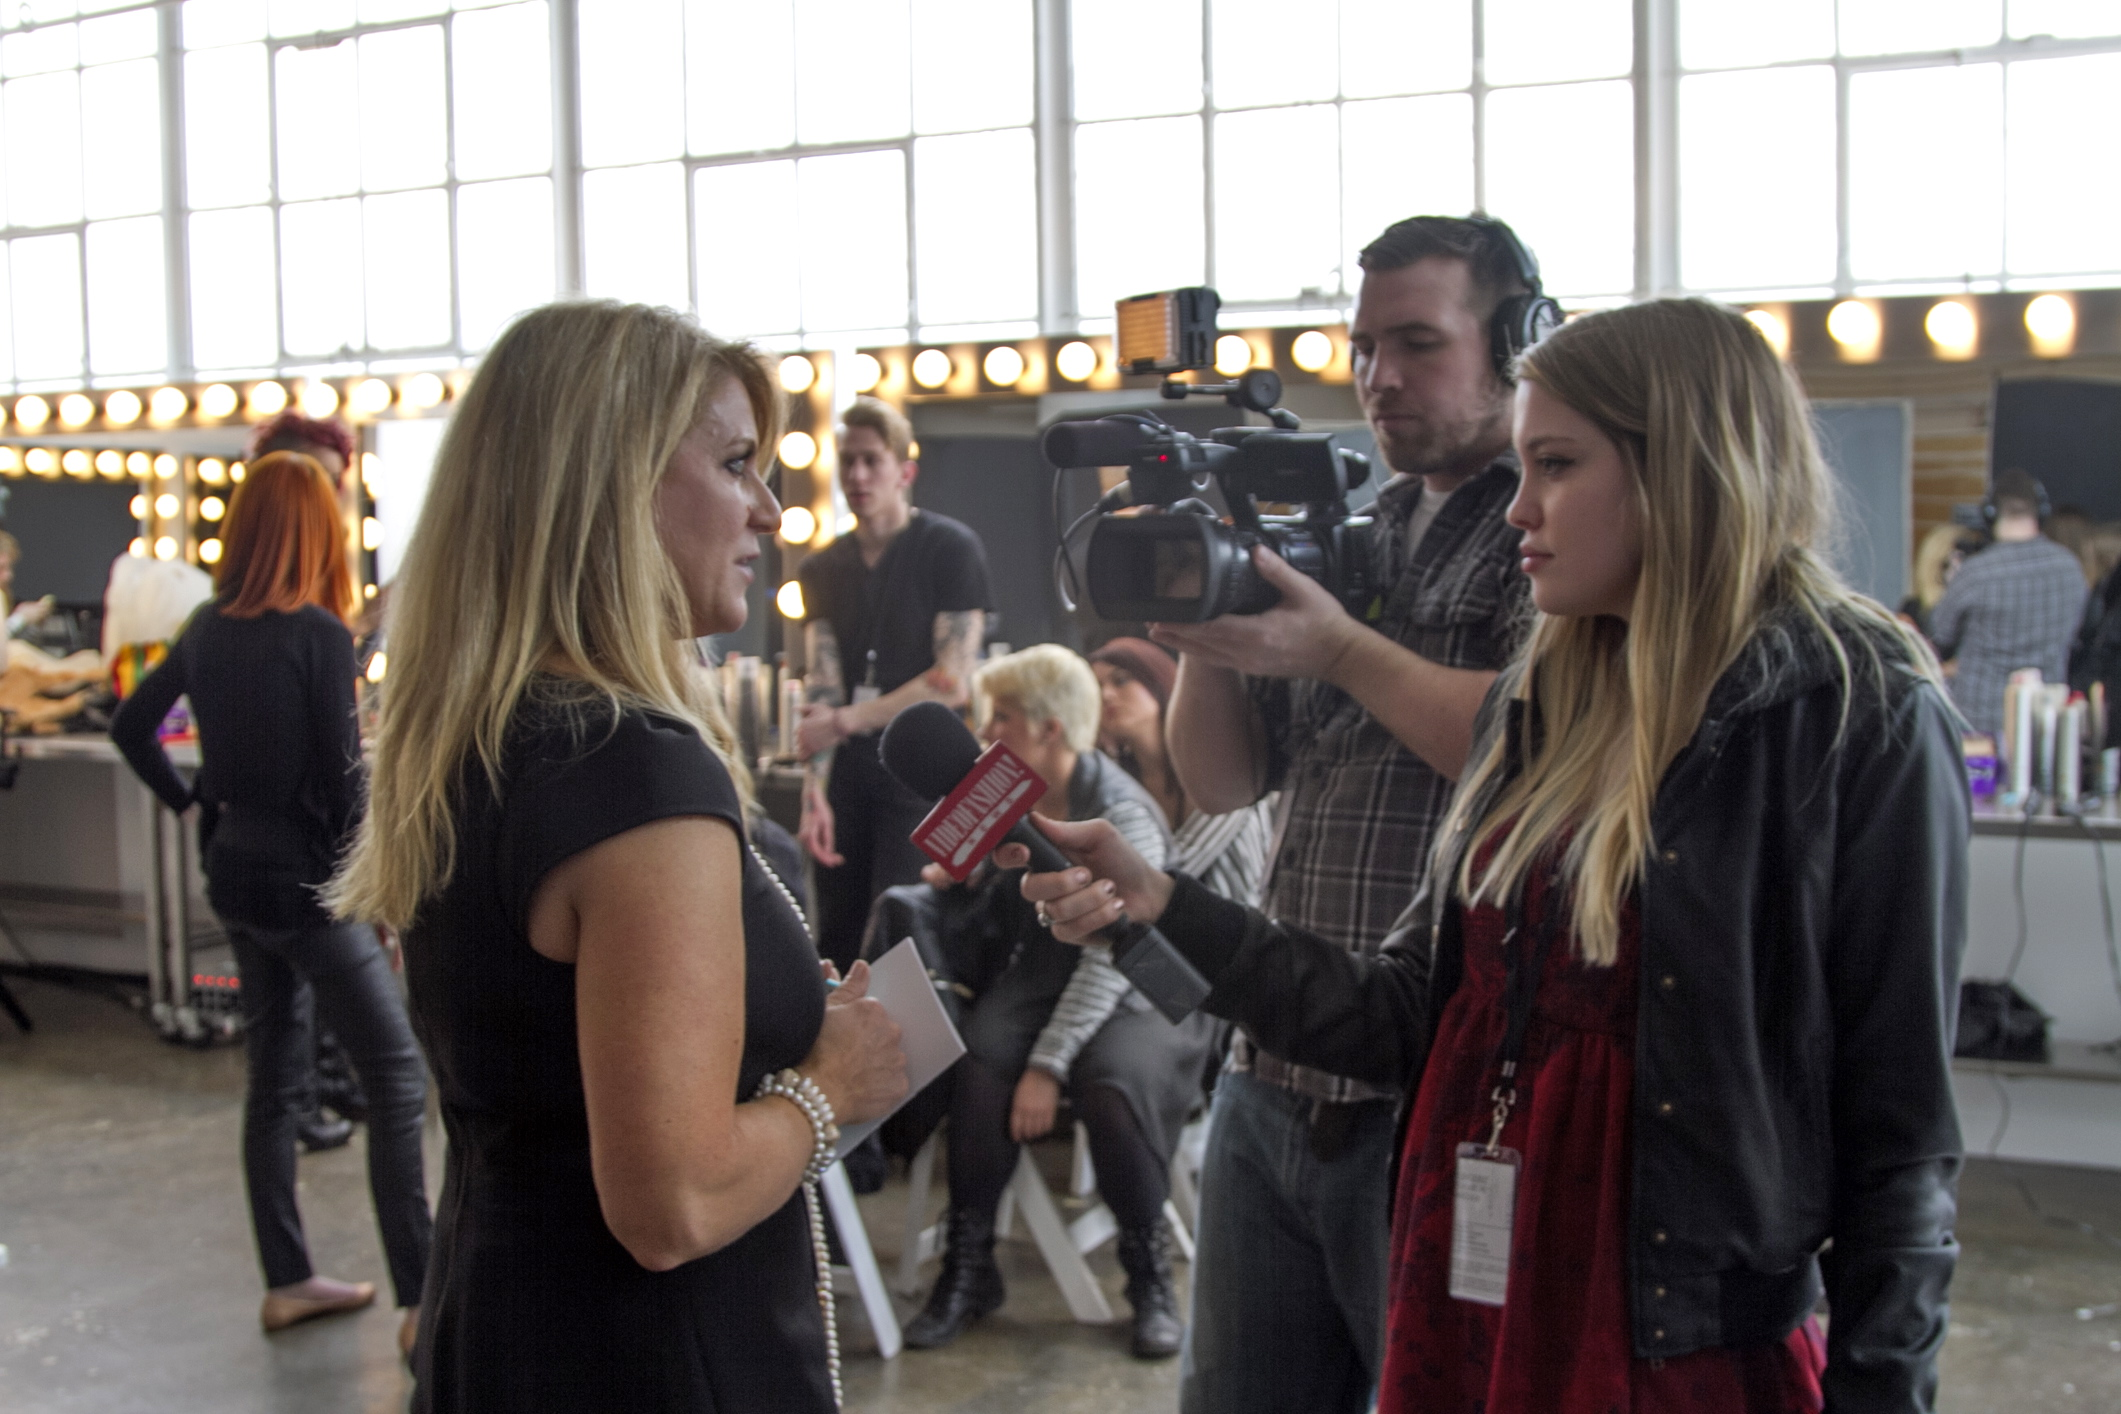 Behind the scenes at Lingerie Fashion Week